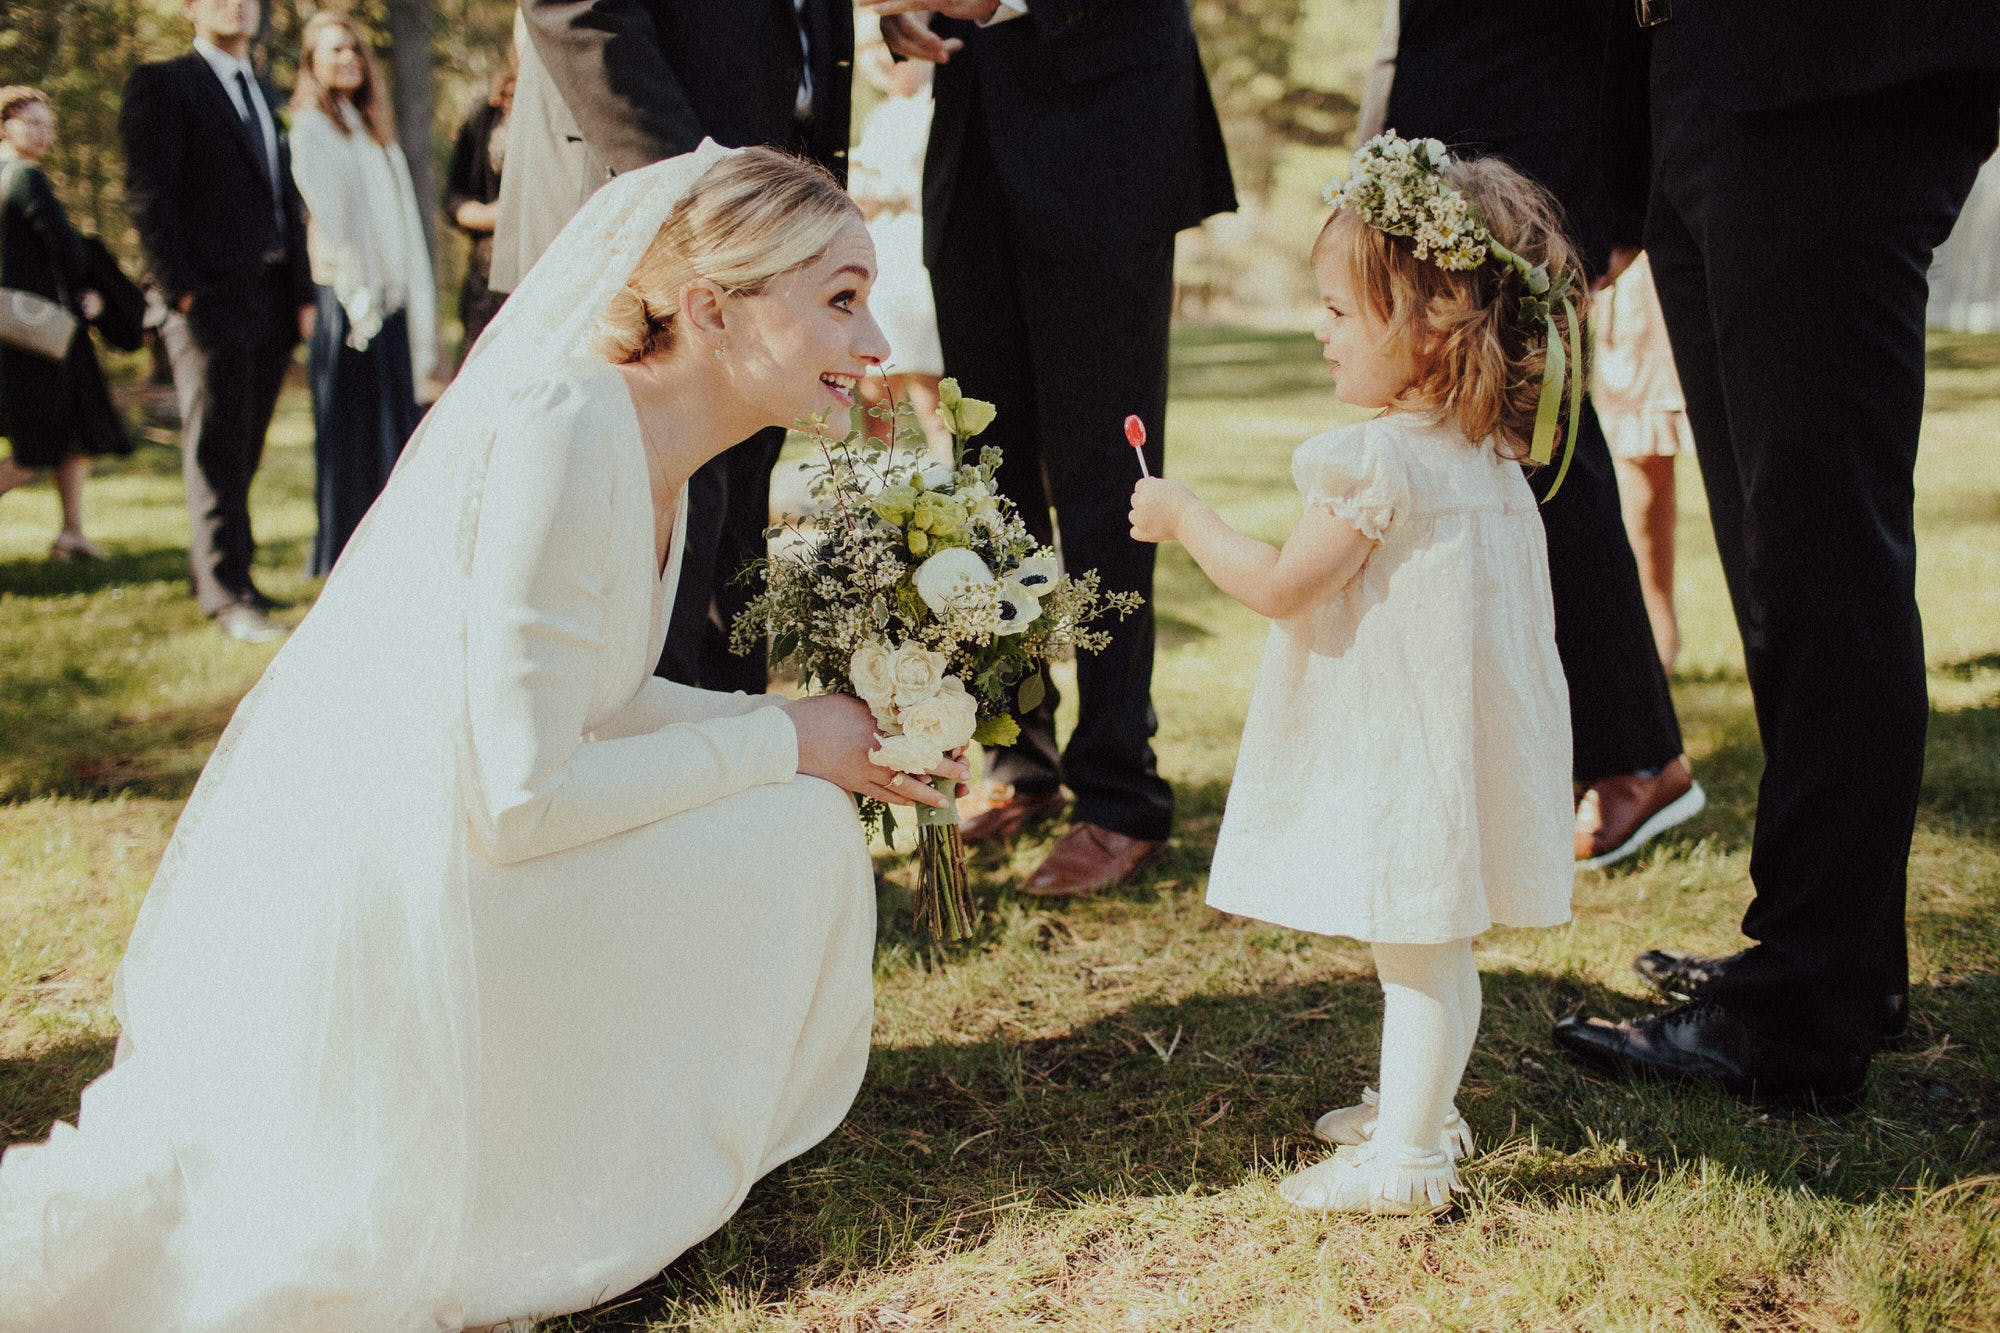 candid wedding shot of bride and flower girl